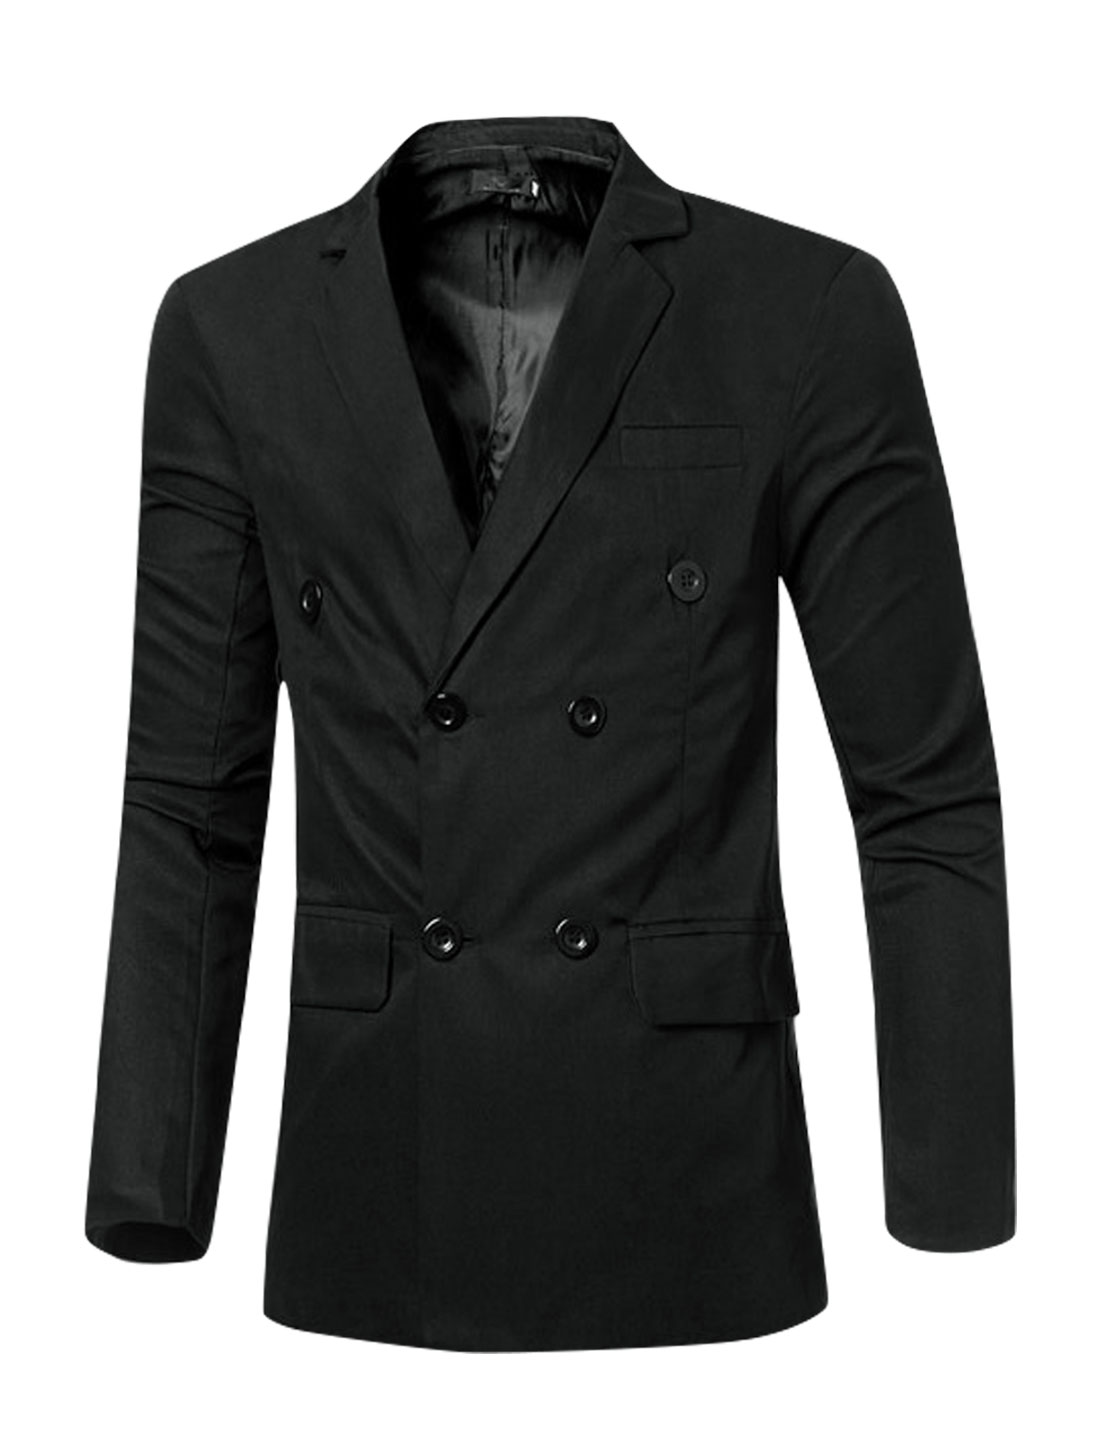 Men Notched Lapel Flap Pockets Double Breasted Blazer Black M